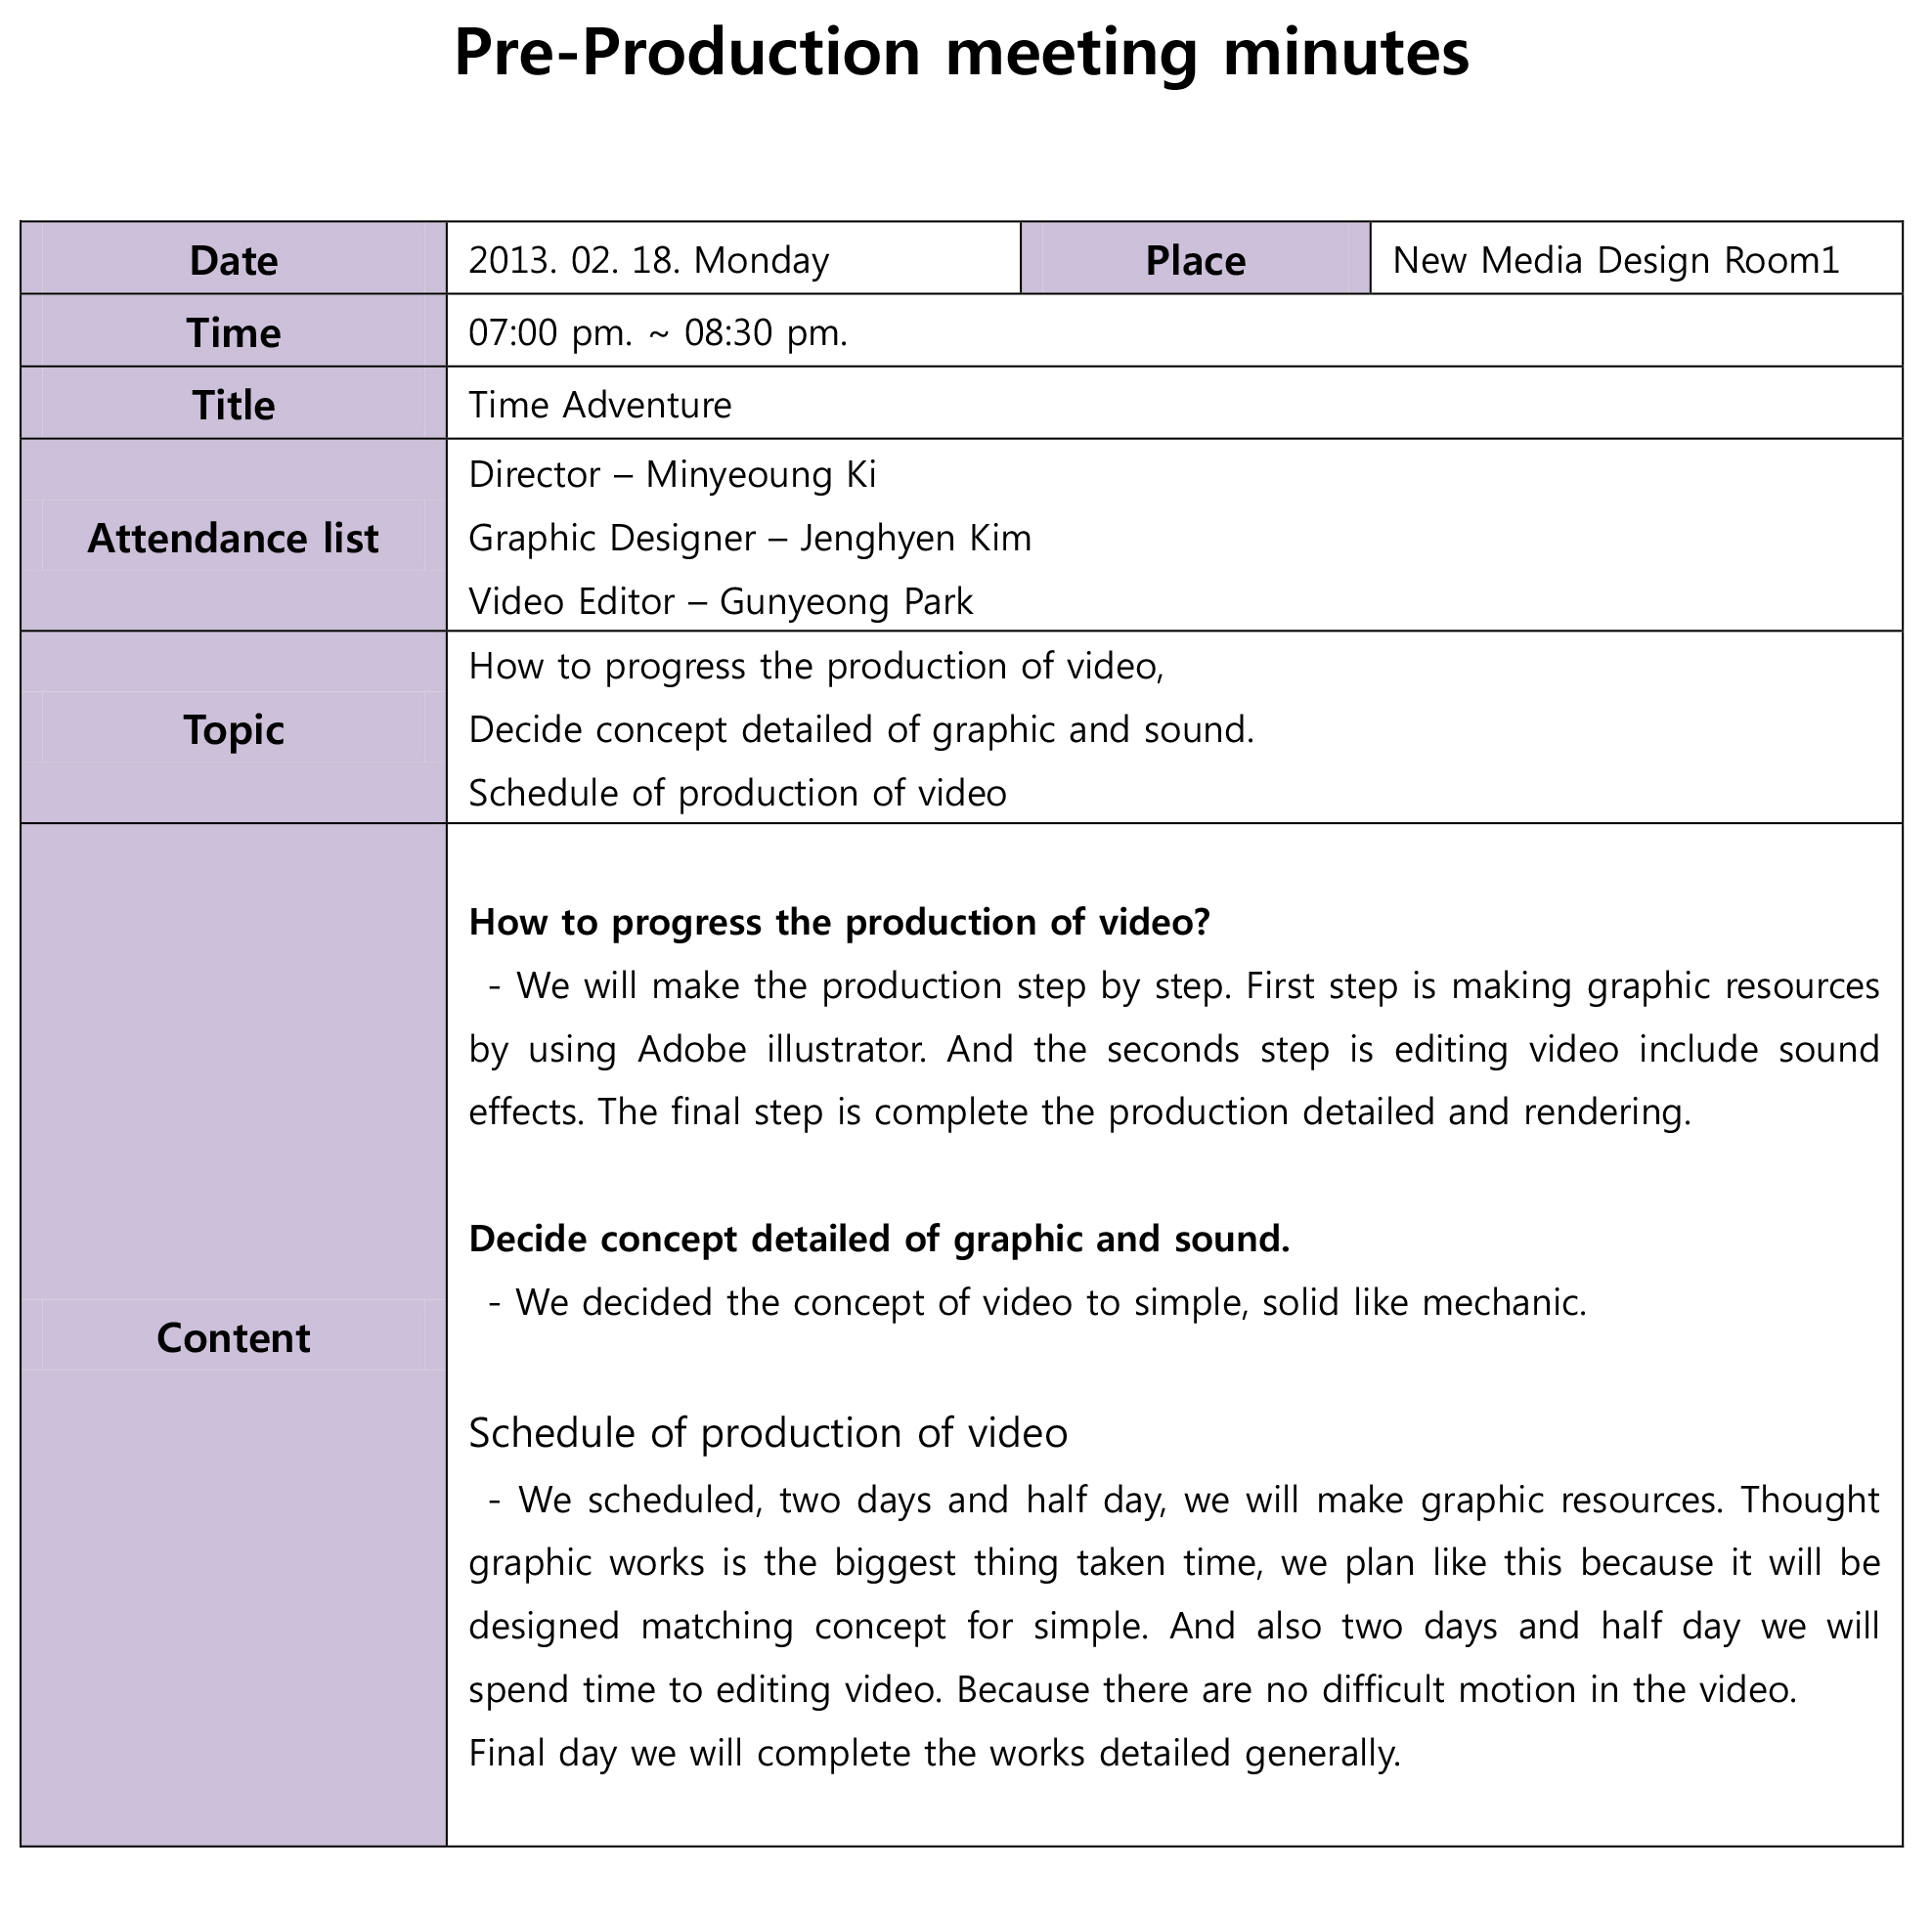 minute of the meeting